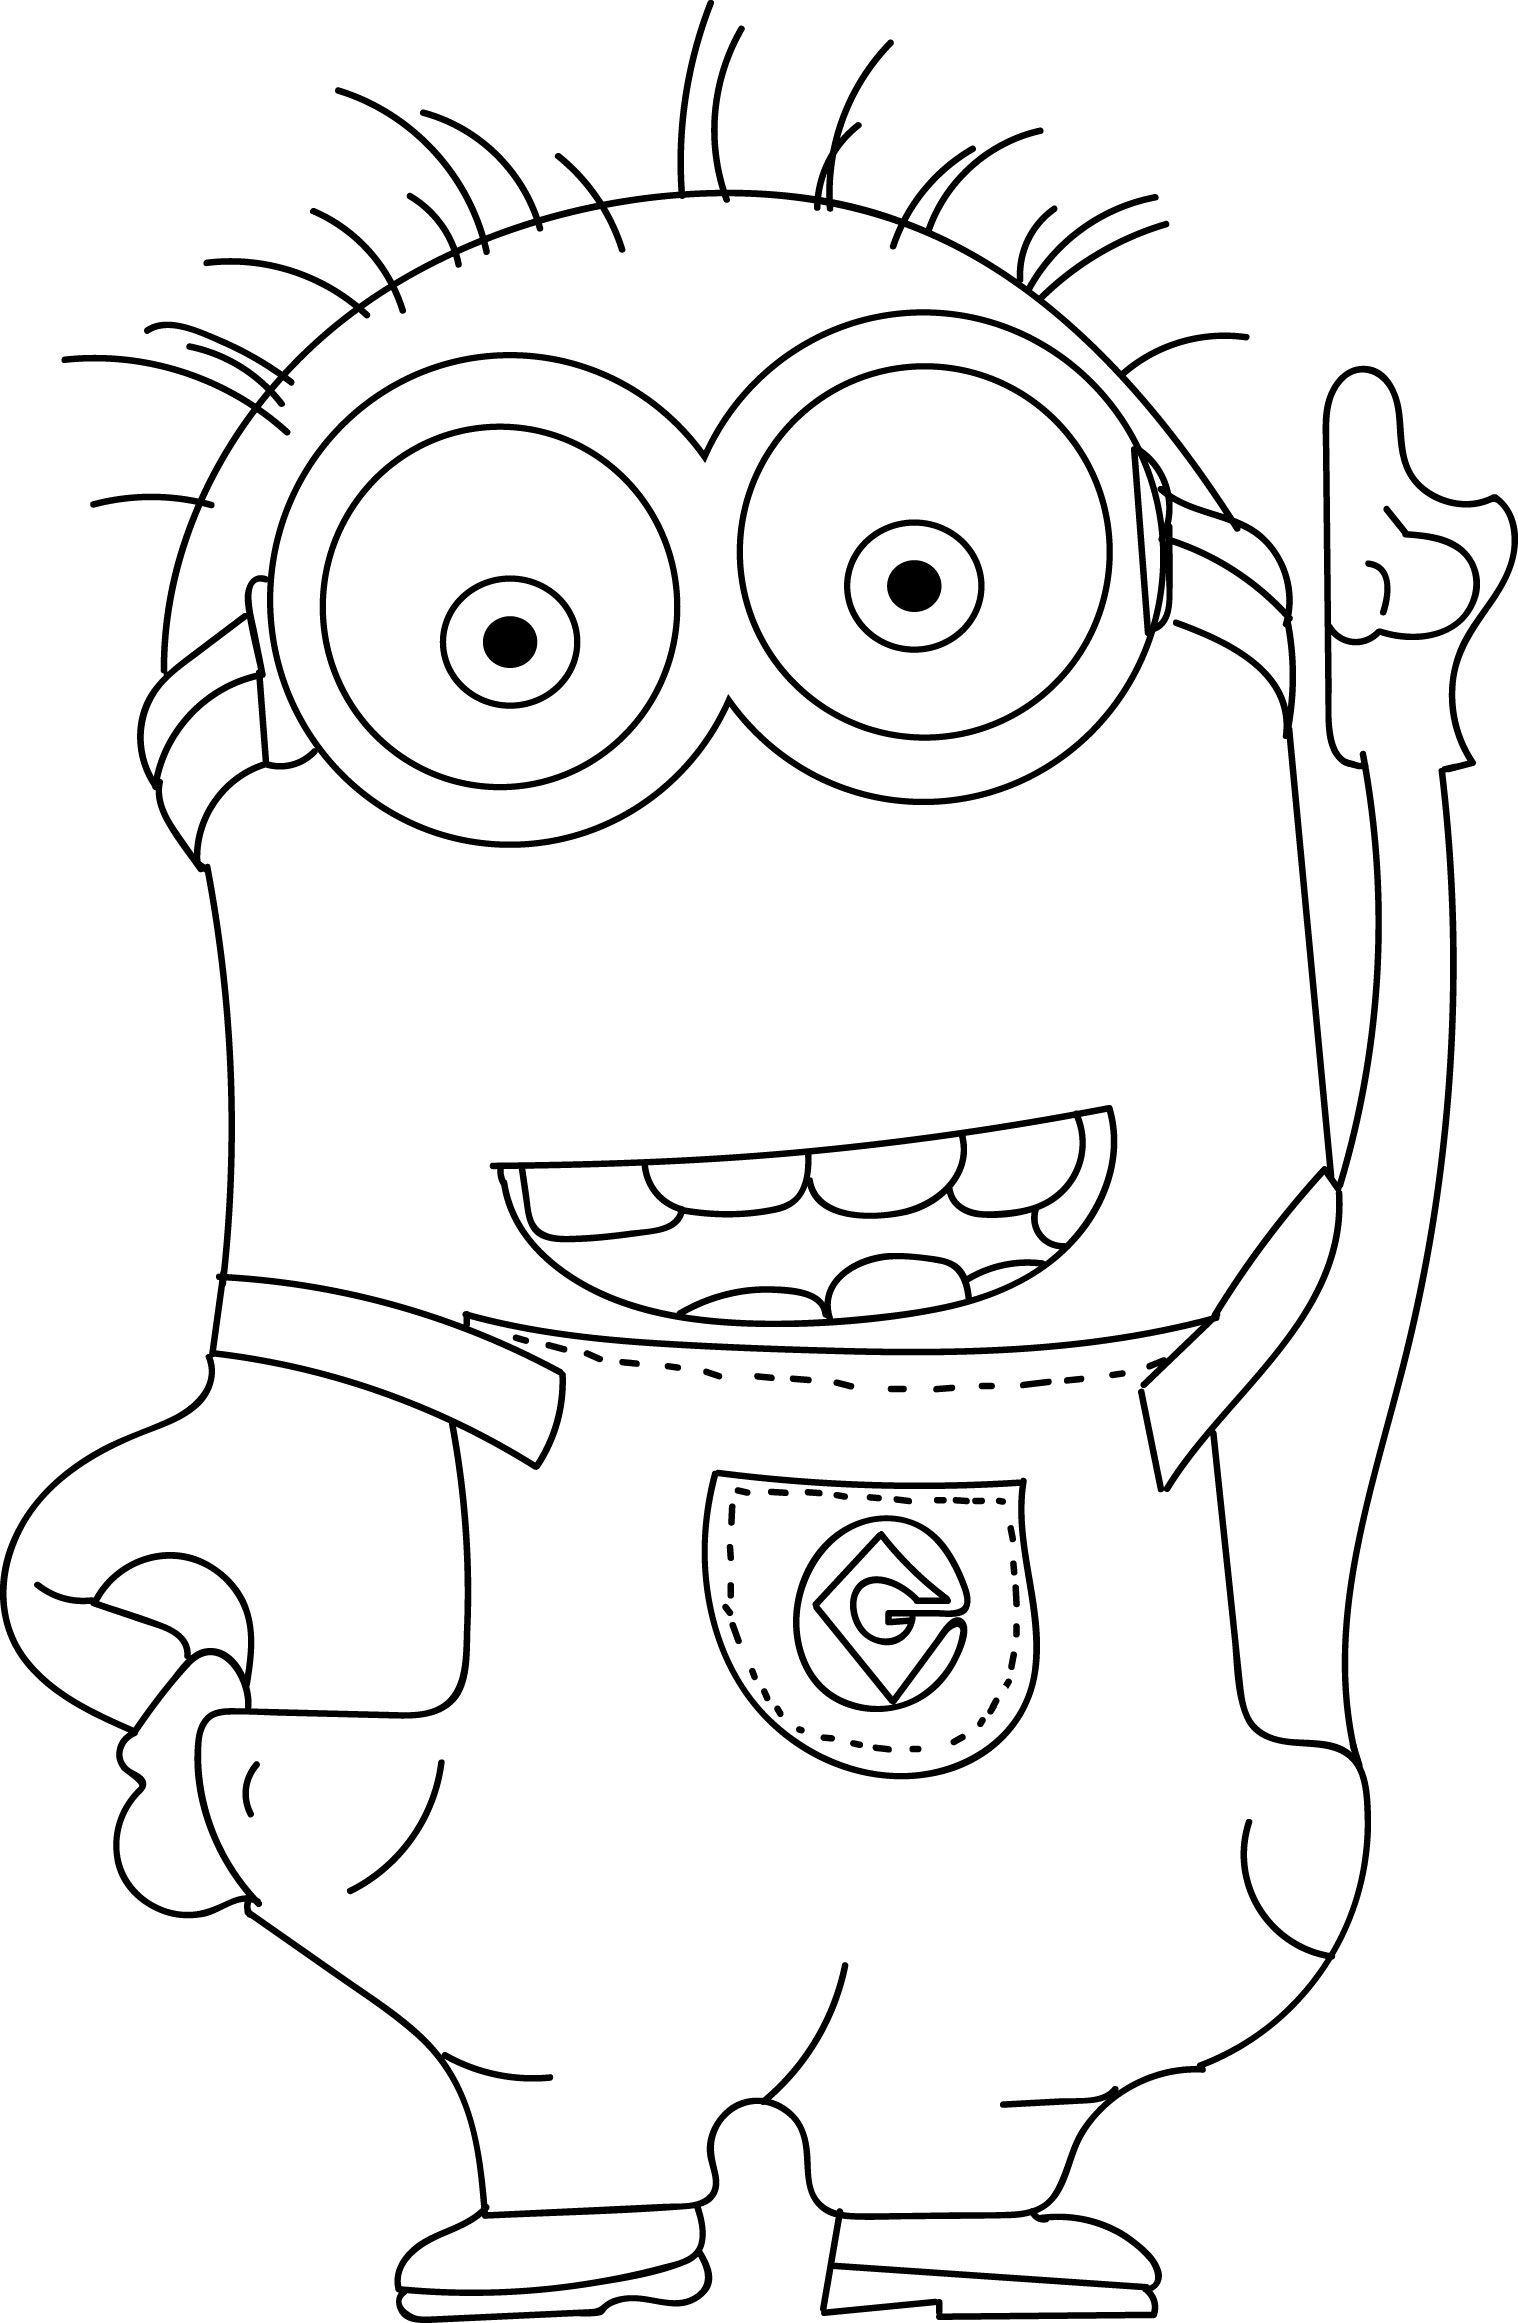 On online coloring minion - Cool Minions Coloring Pages Check More At Http Wecoloringpage Com Minions